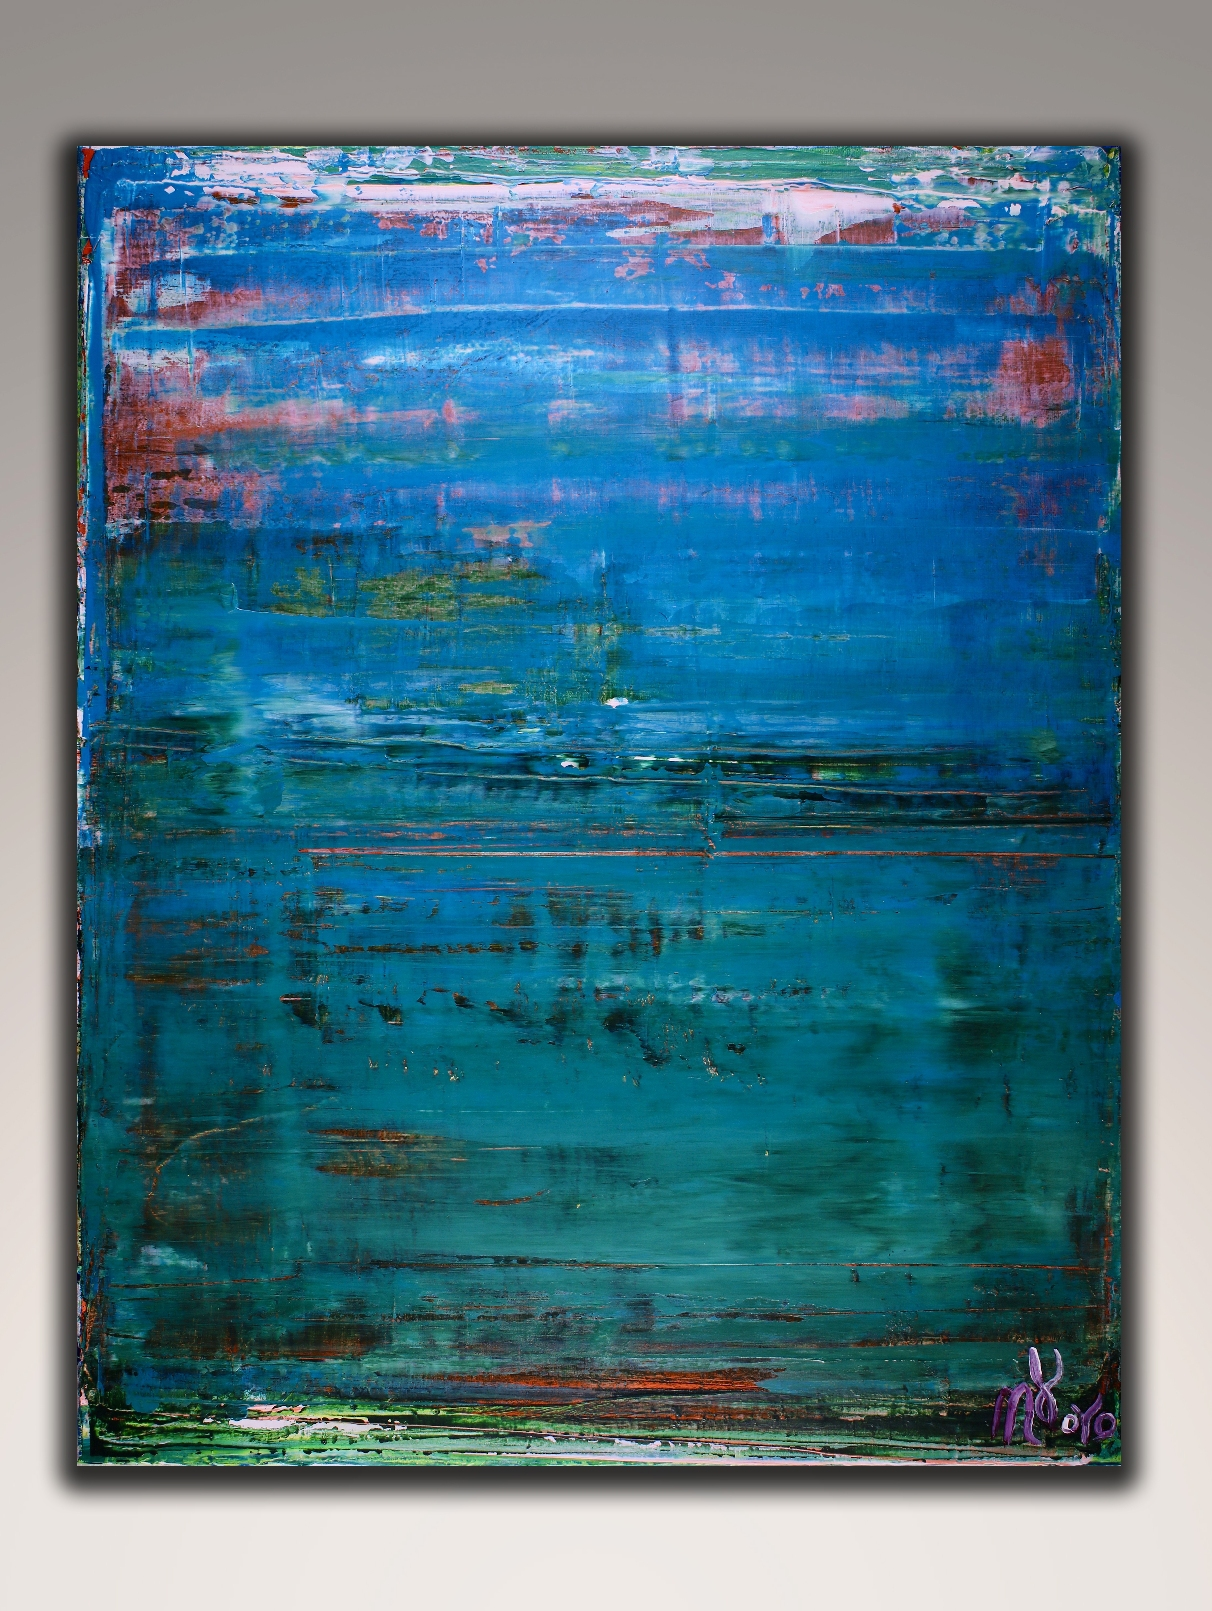 Maritime Spectra 2 by Nestor Toro (2018) abstract art Acrylic painting